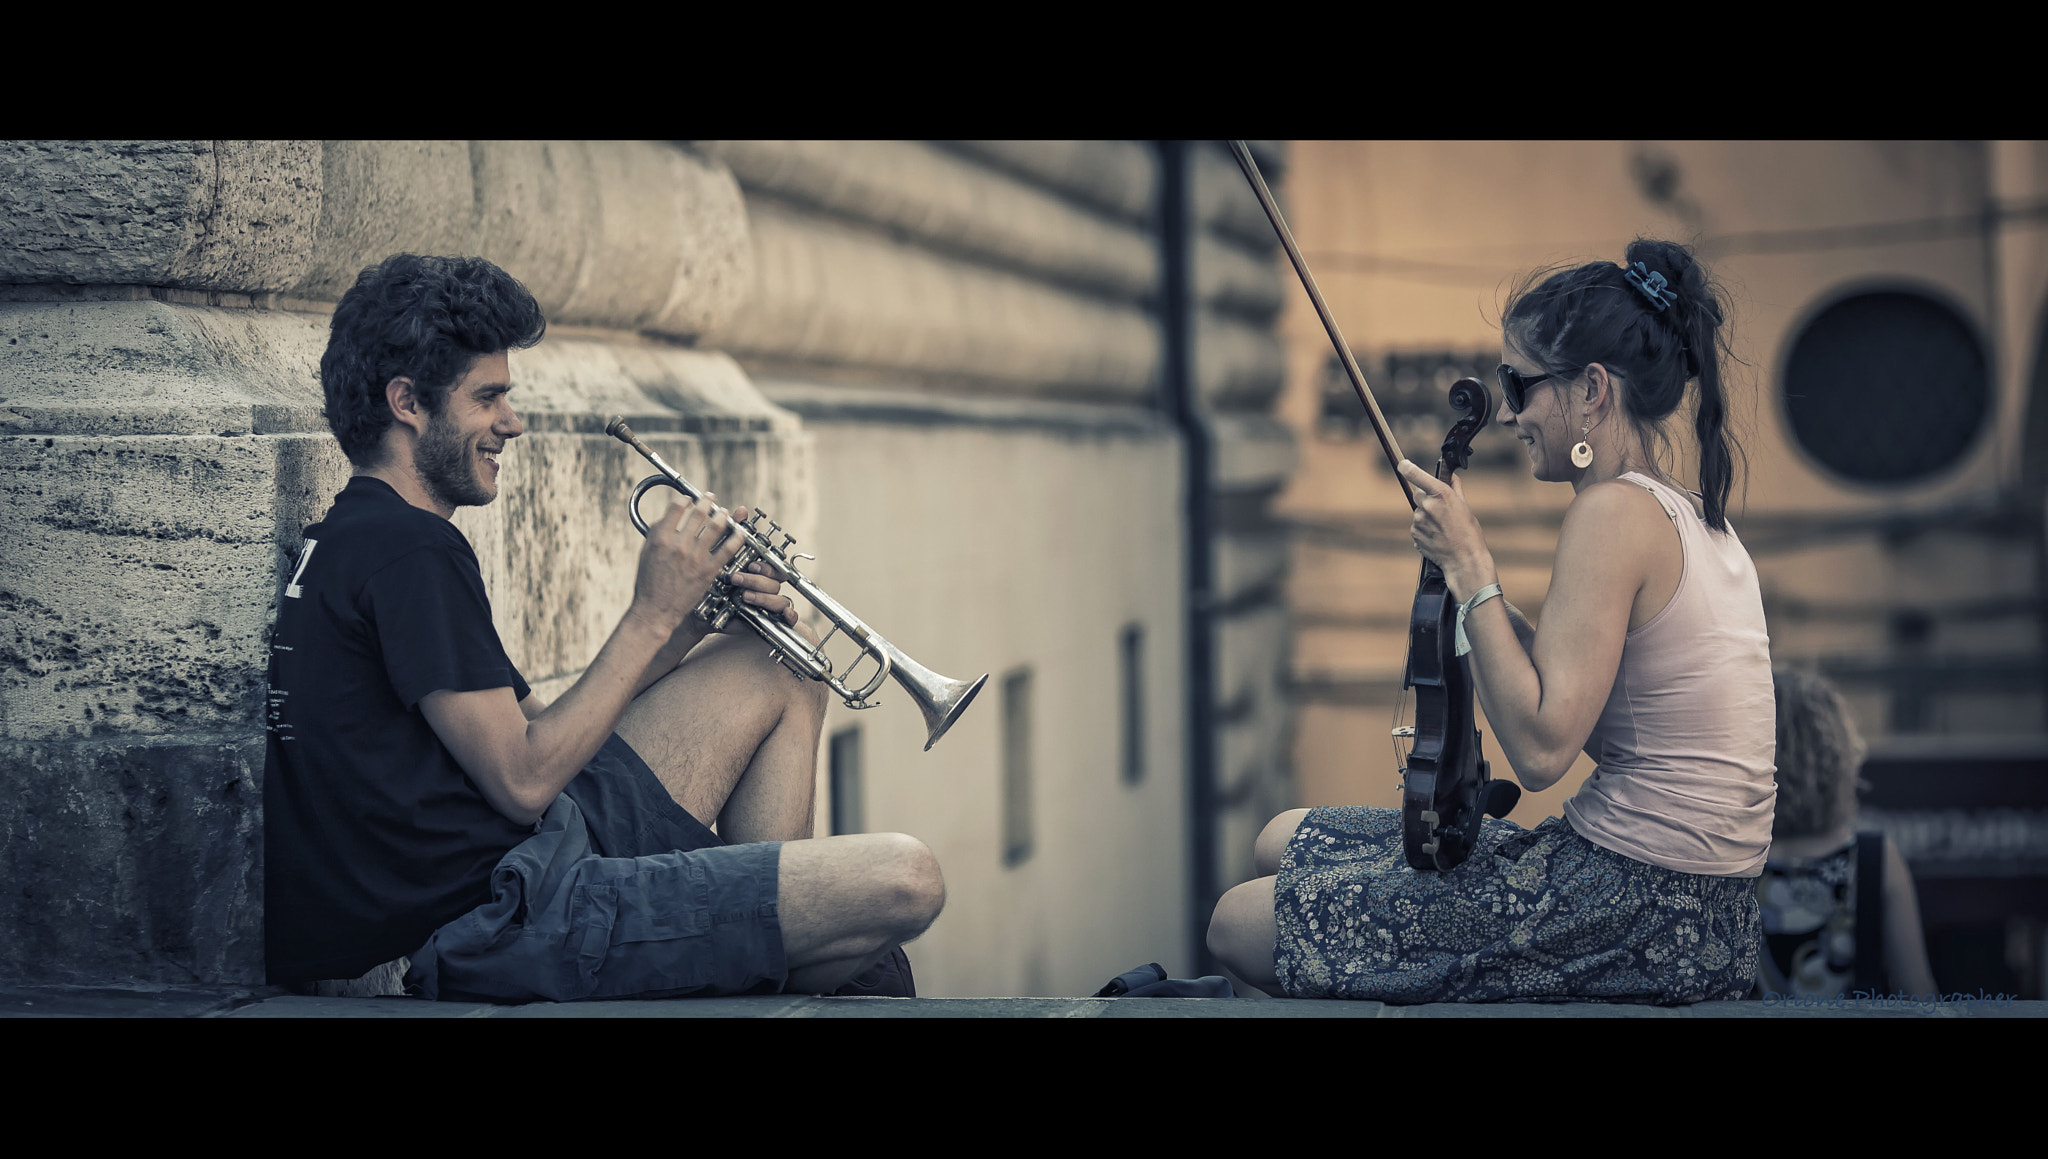 Photograph Umbria Jazz by laura  malucchi on 500px